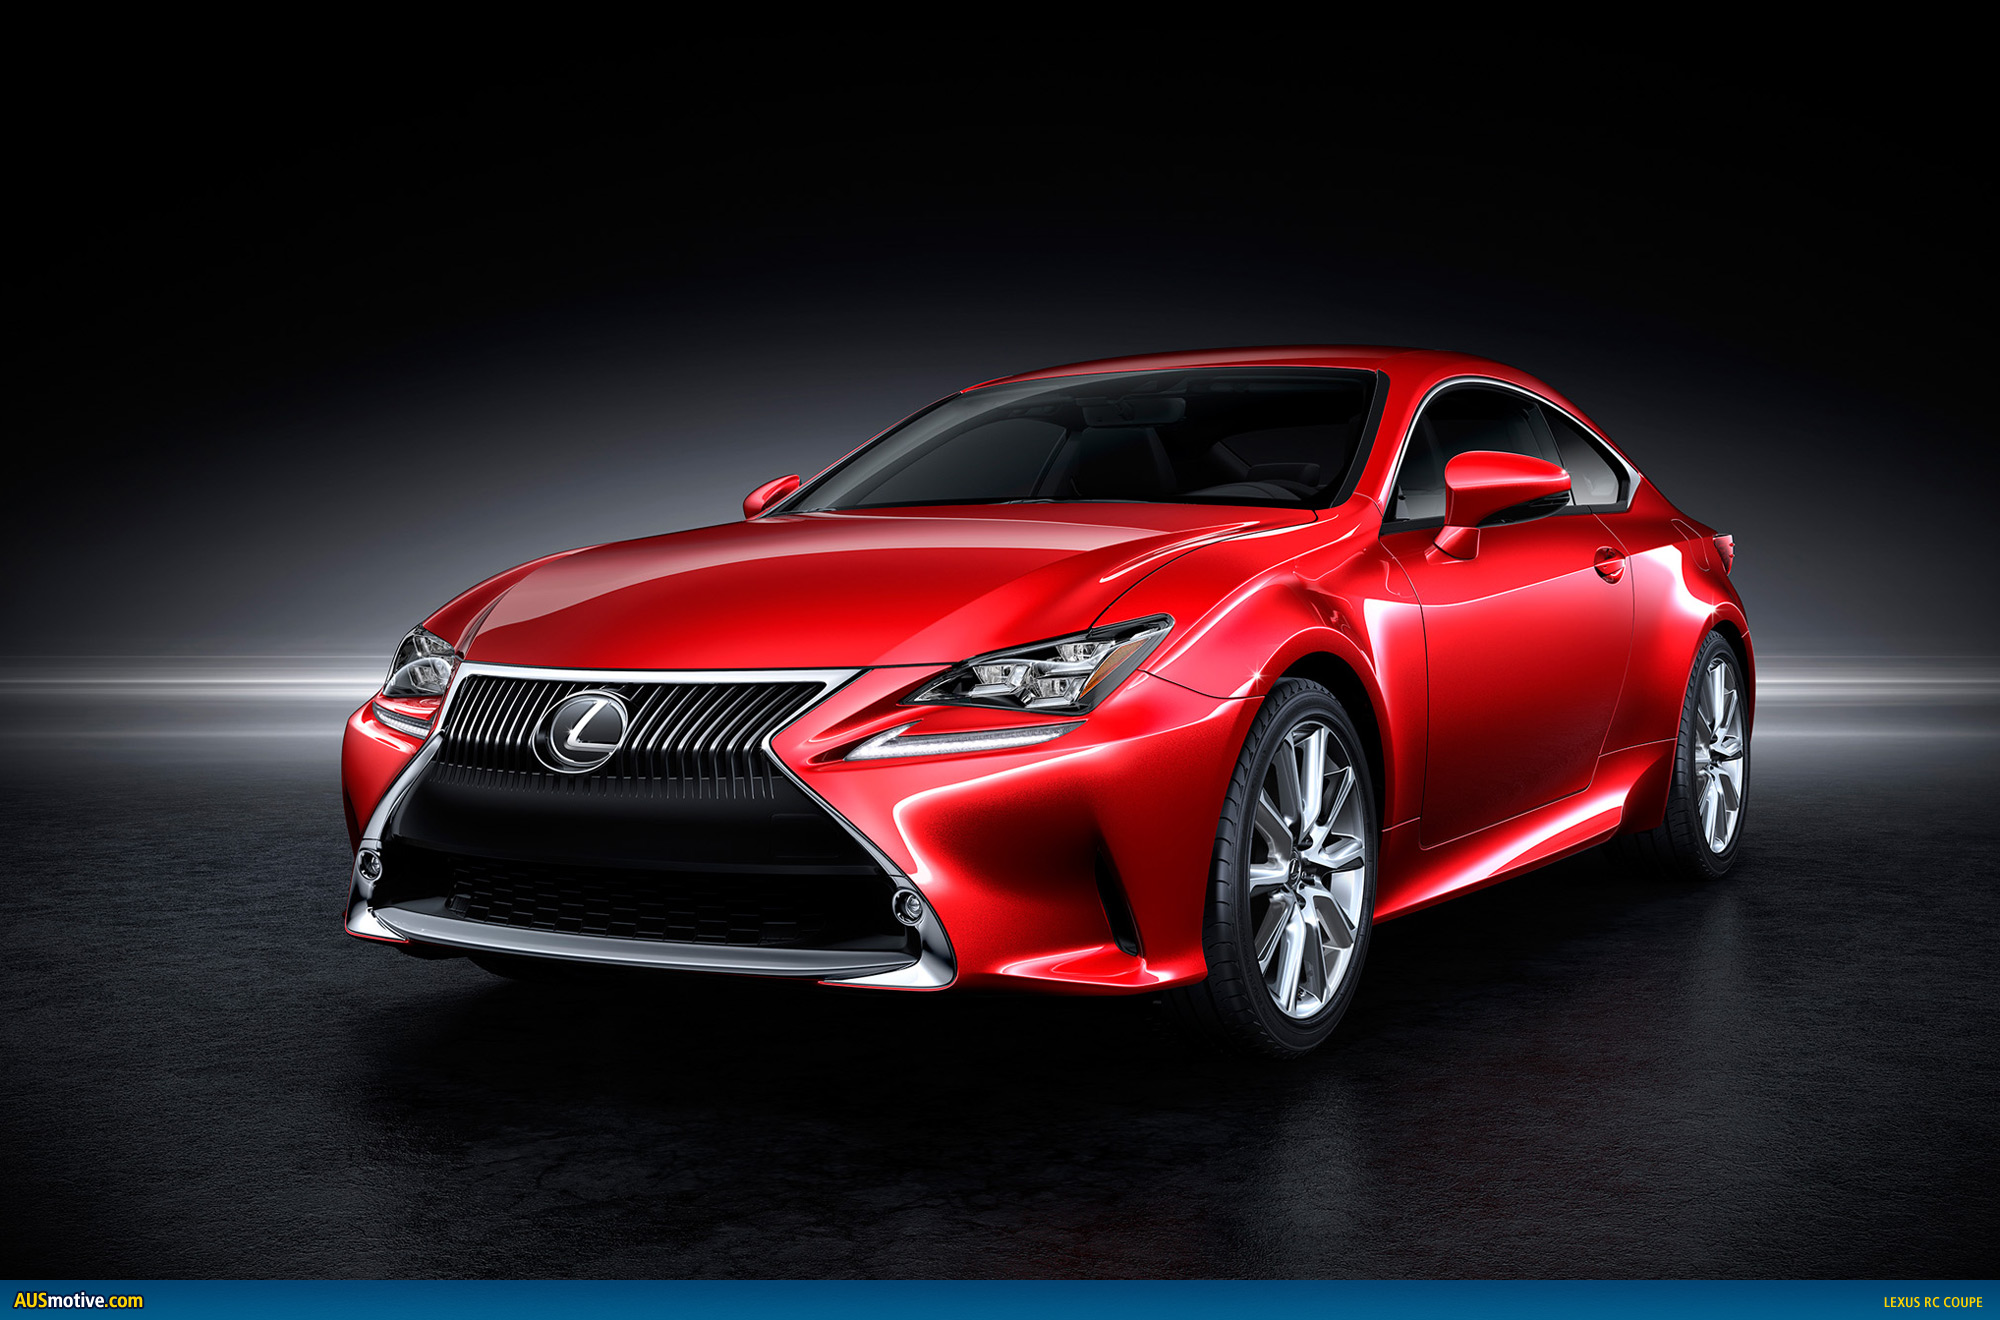 AUSmotive.com » Lexus RC coupe previewed before Tokyo debut